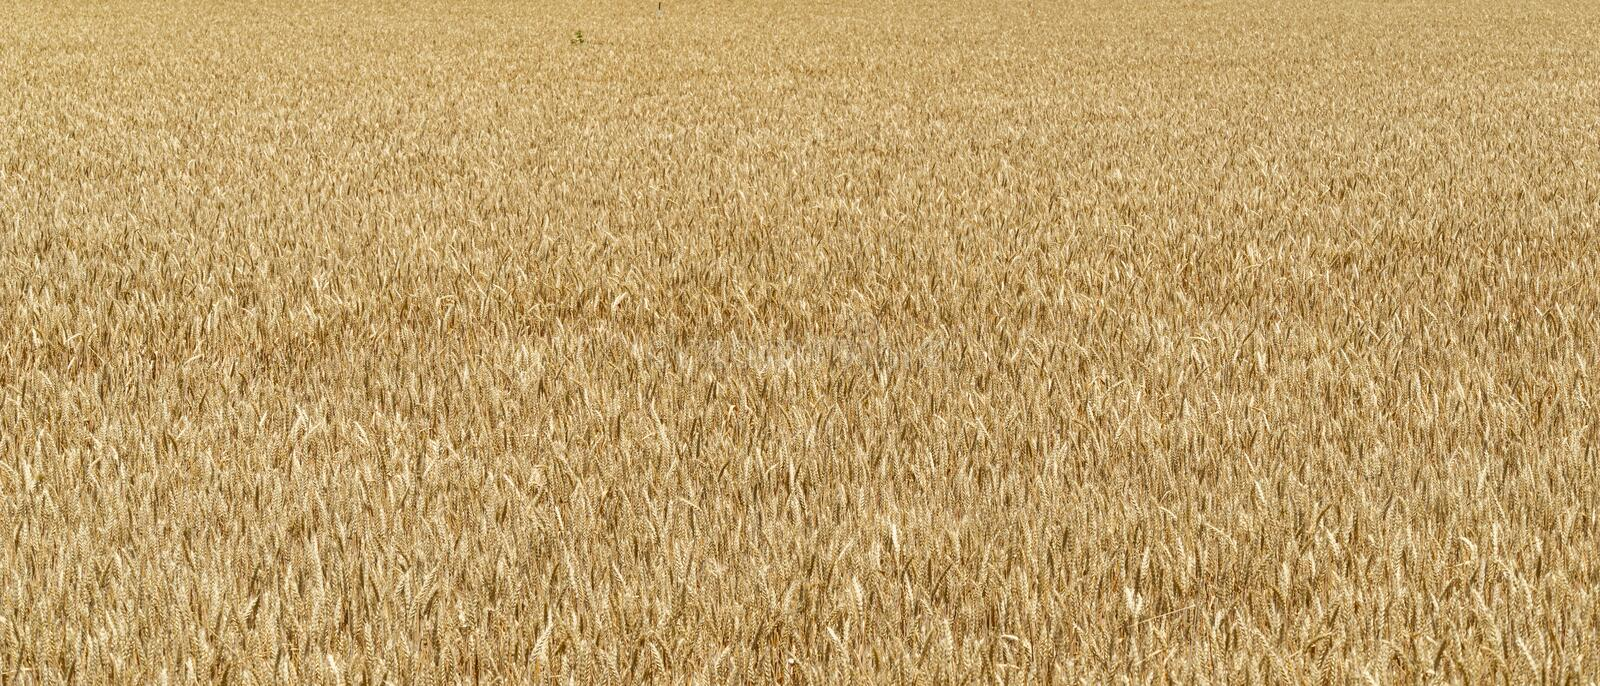 Golden ripe ears of wheat in field, rural countryside. Sunny summer day in field during harvest wheat close up stock photography